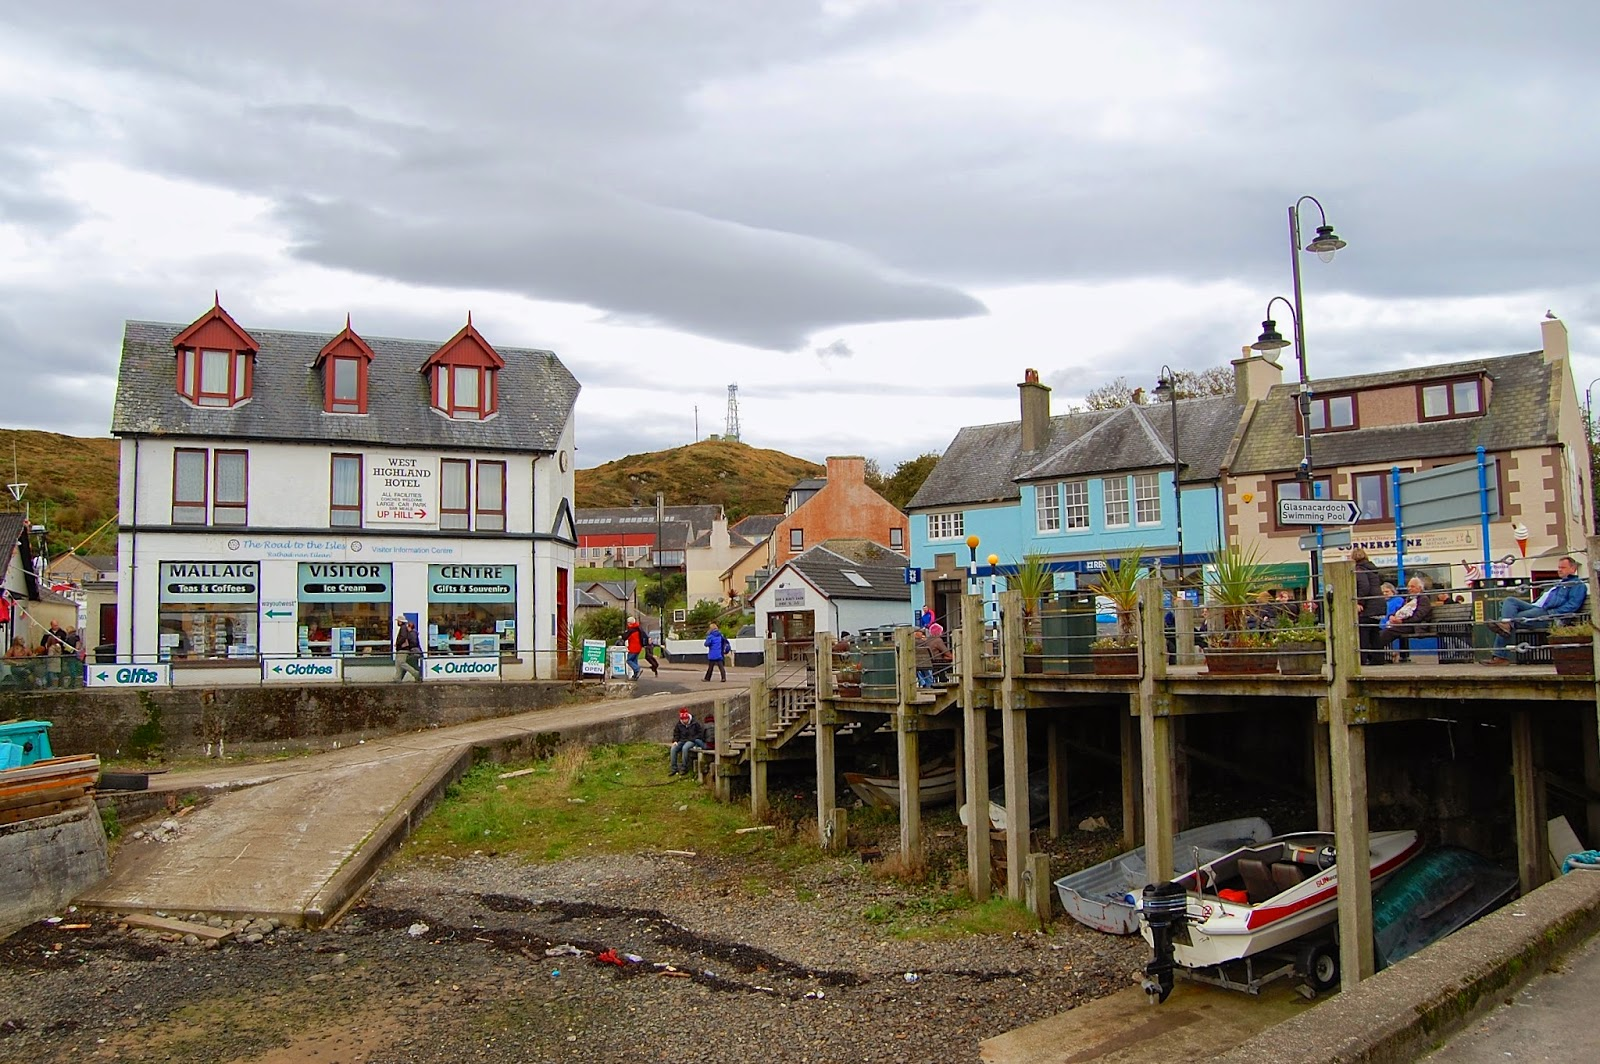 Shops in Mallaig